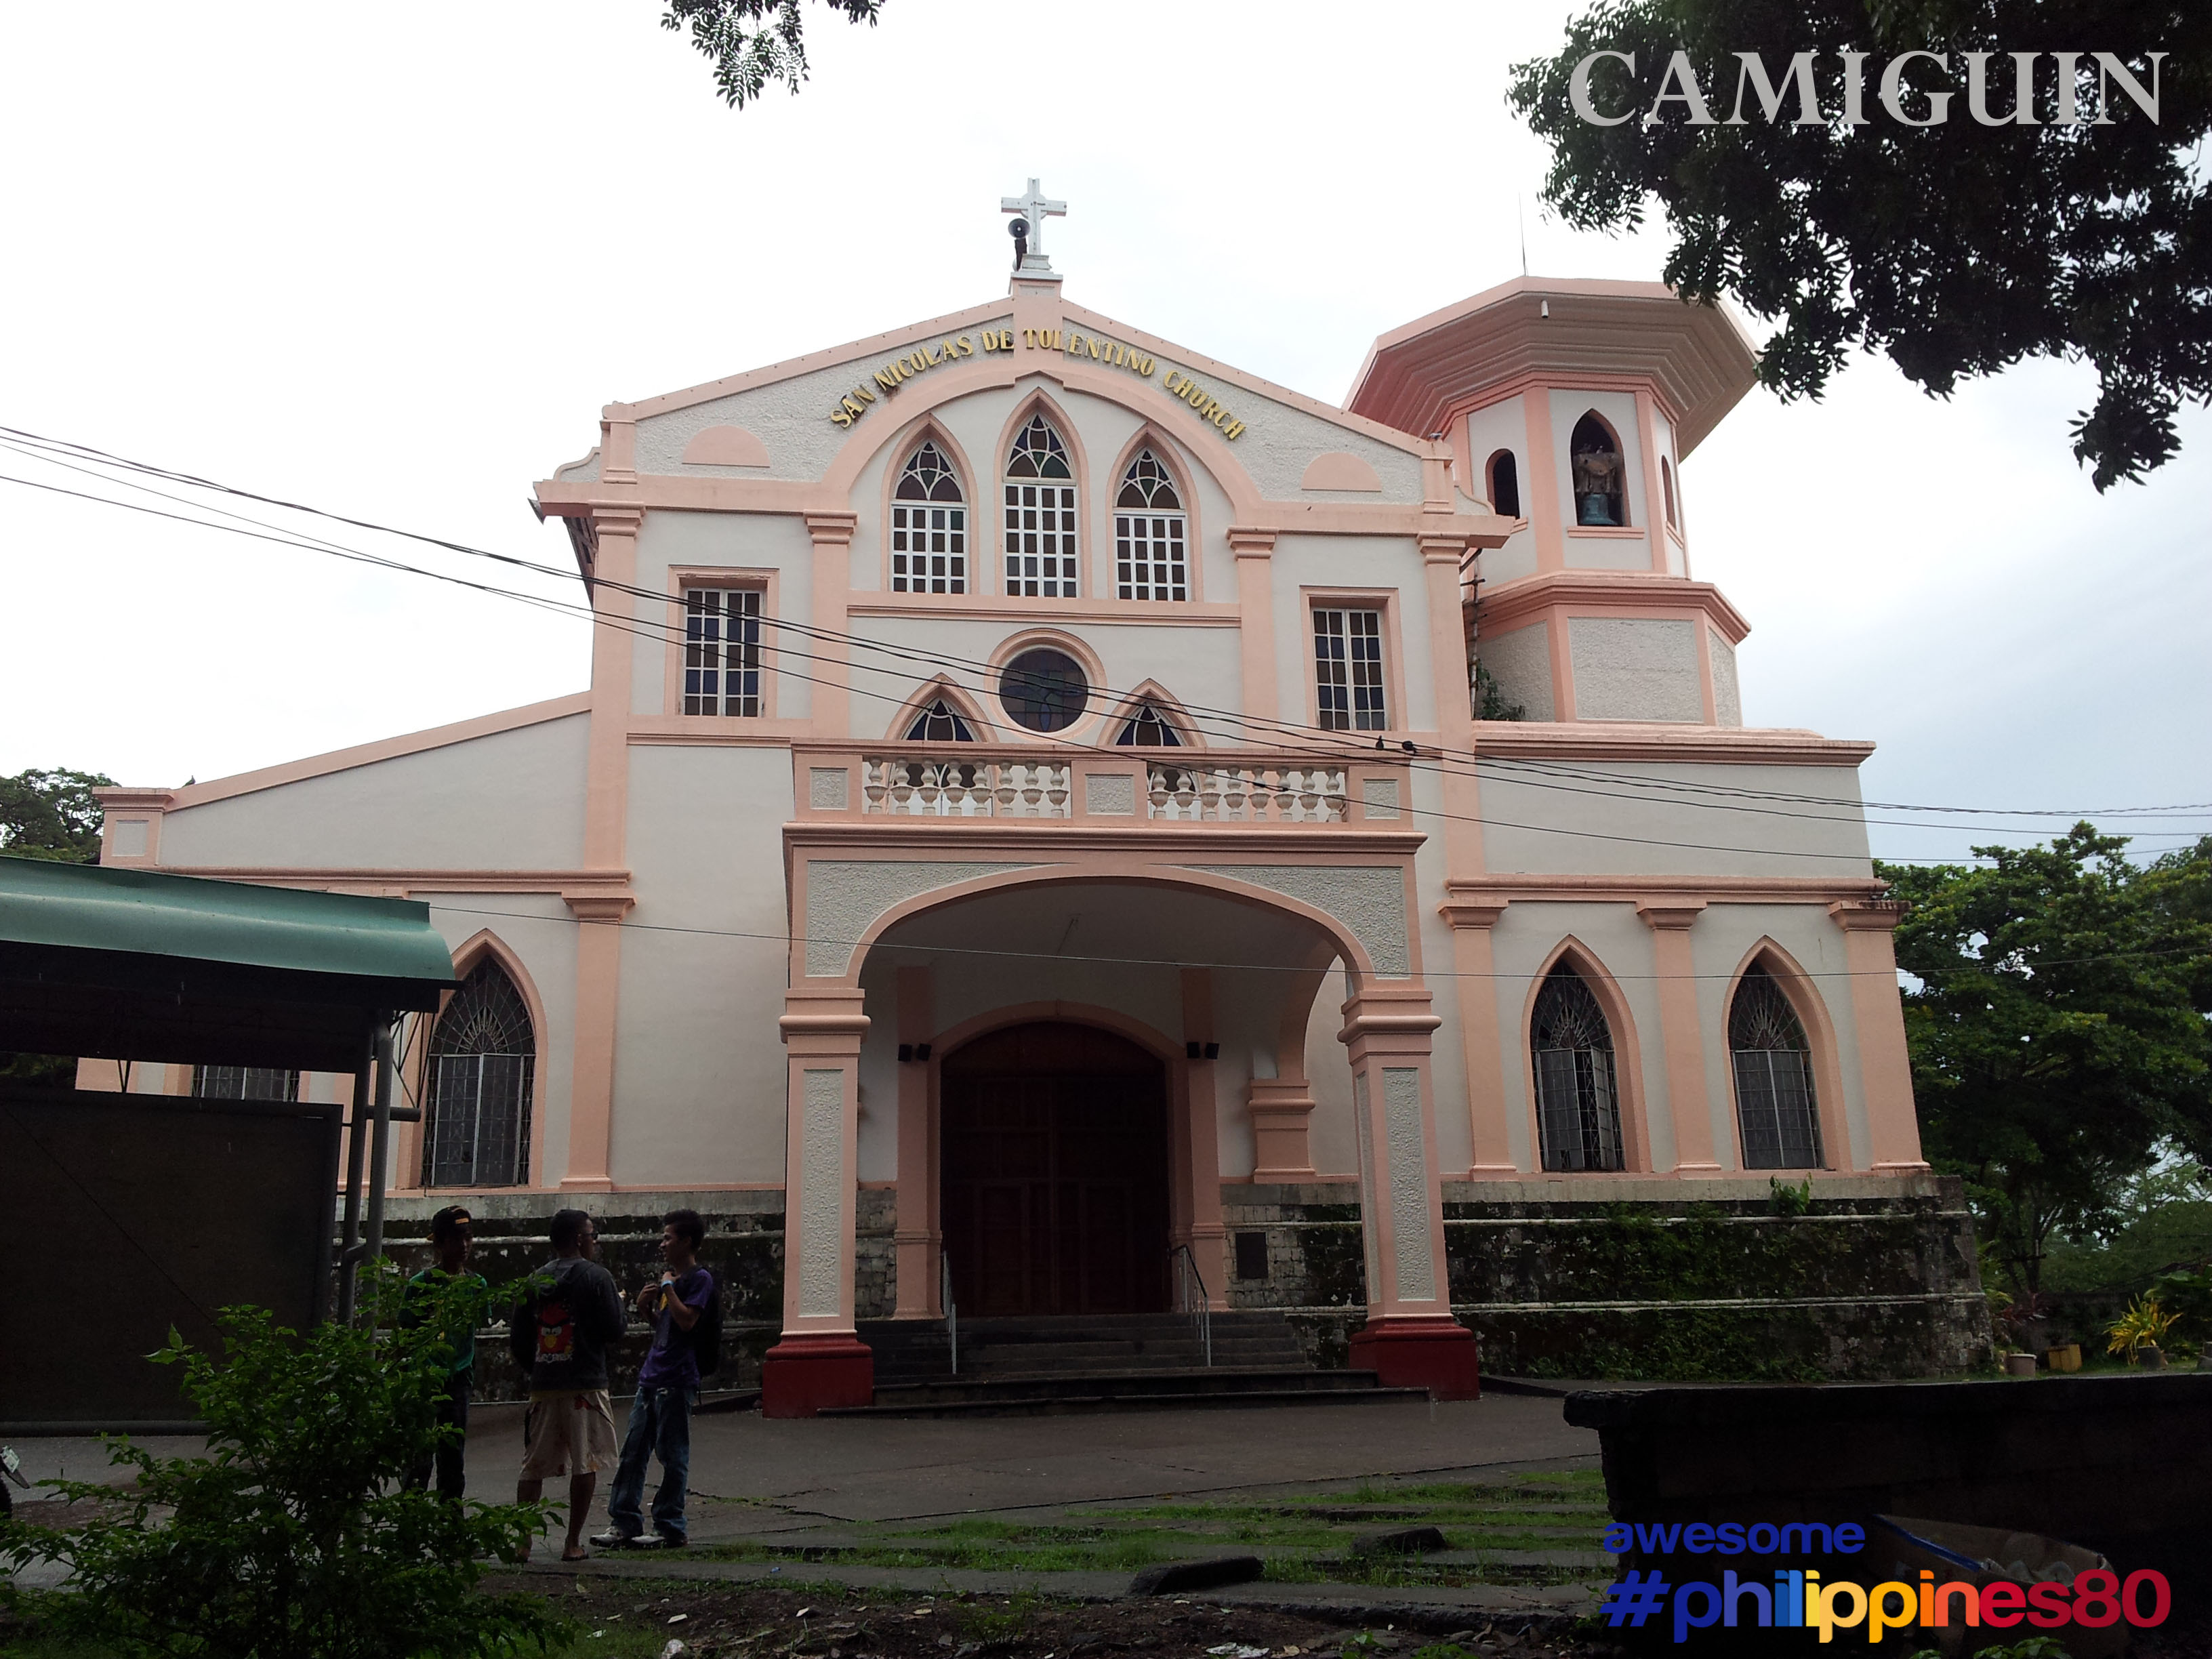 camiguin san nicholas de tolentino church in camiguin top camiguin san nicholas de tolentino church in camiguin top places to see in camiguin